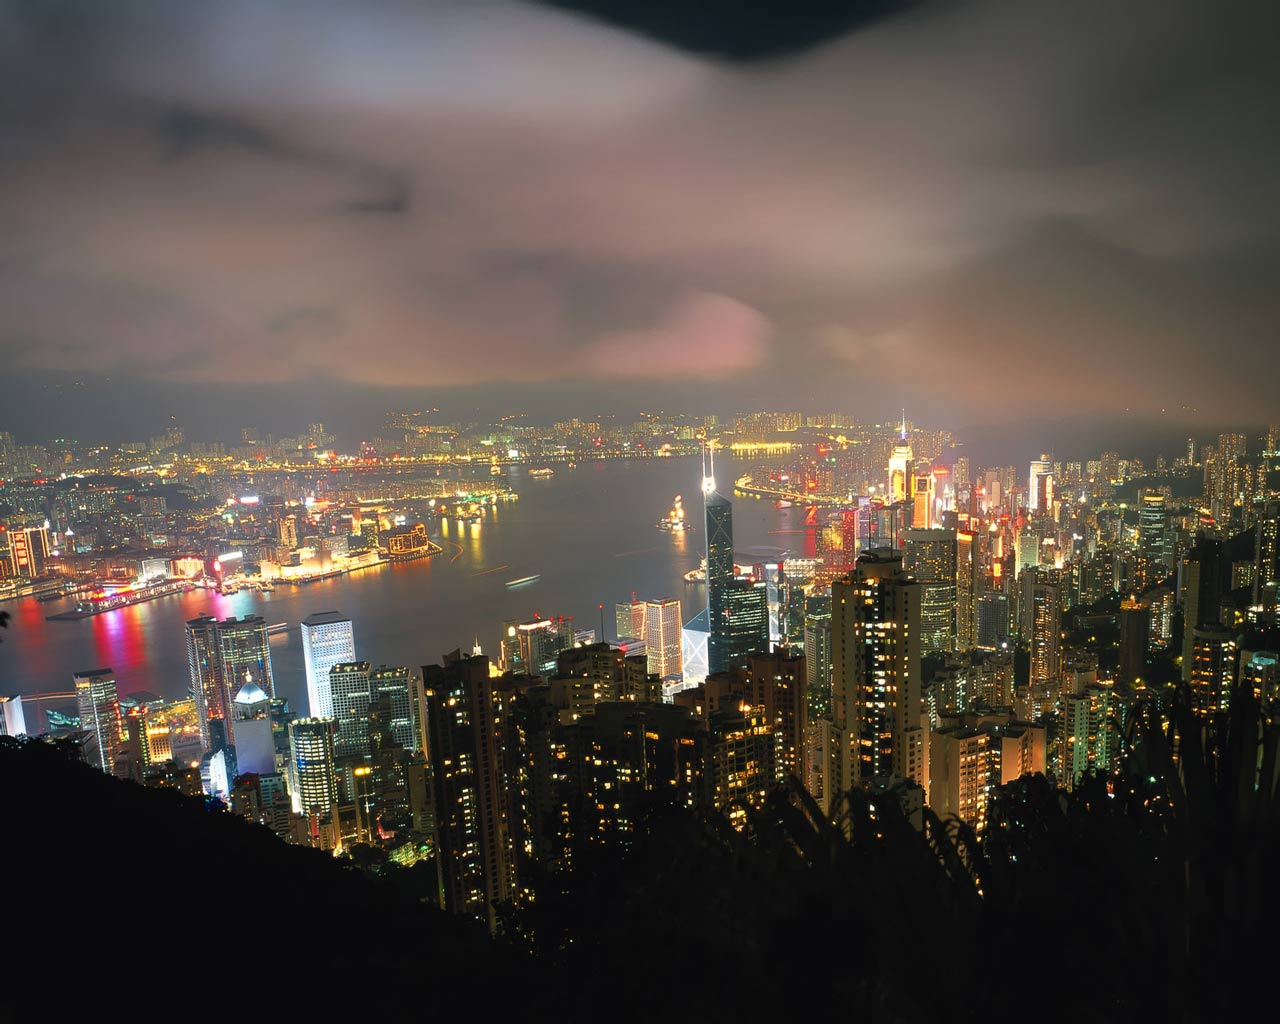 Hong Kong Night View HD desktop wallpaper High  - hong kong city nights hd wallpapers